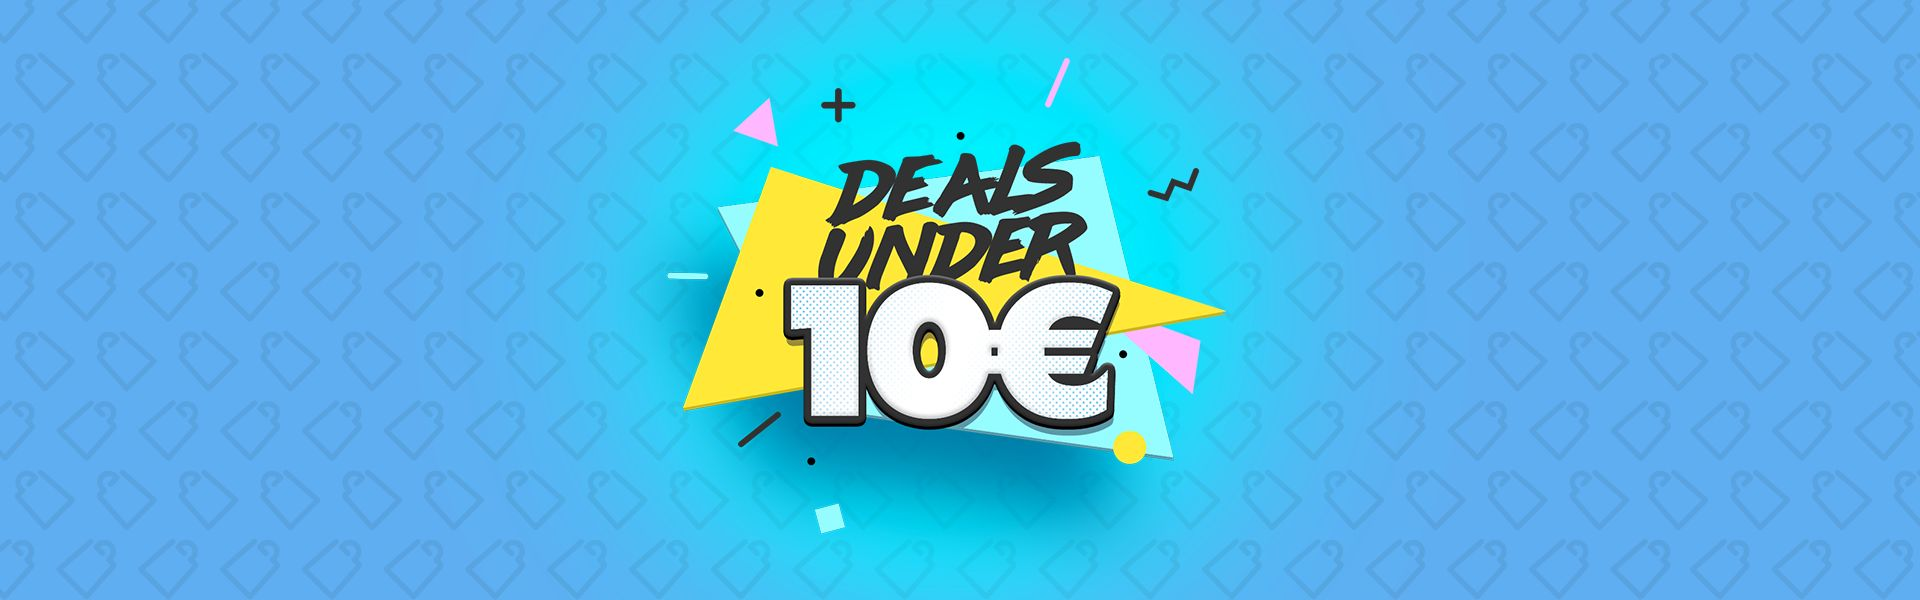 PC Download games for less than 10€